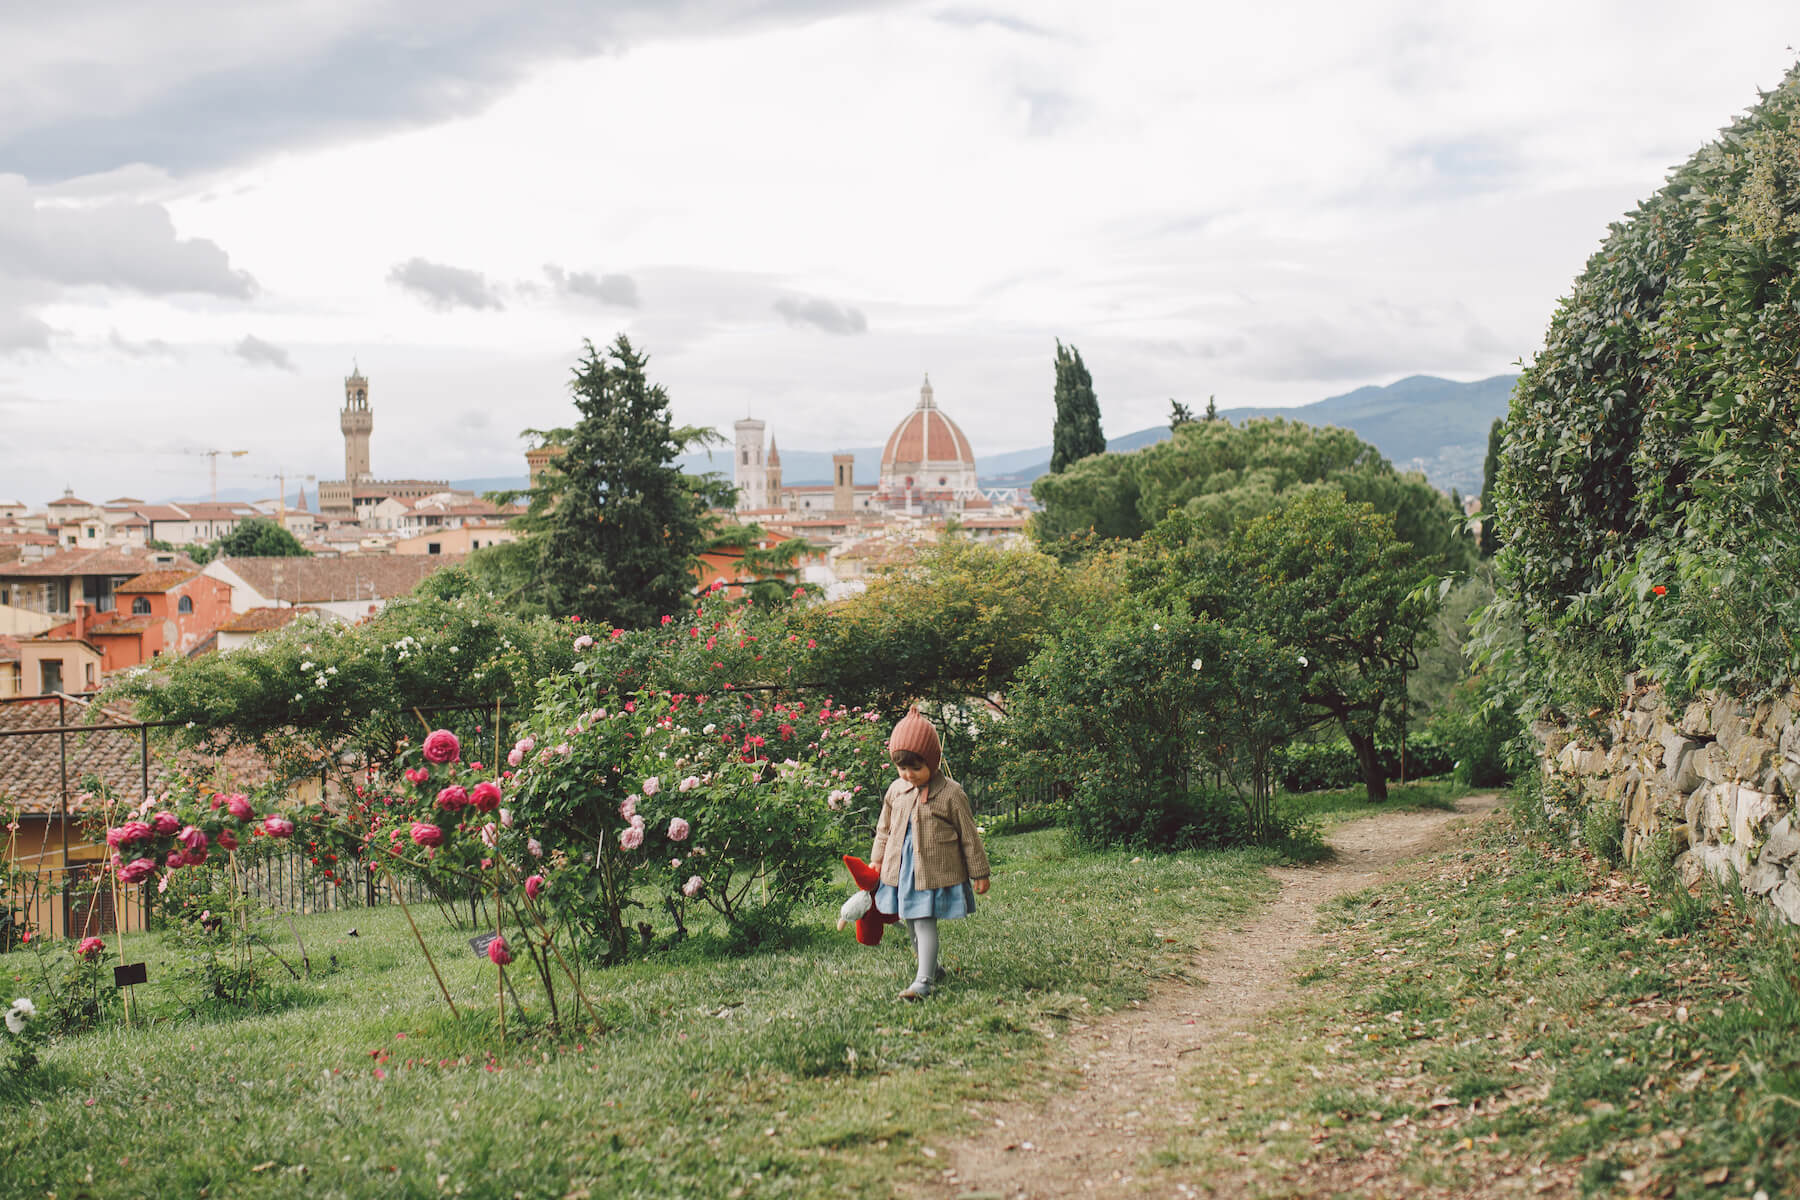 a little girl is holding a toy and walking in a garden in Florence, Italy